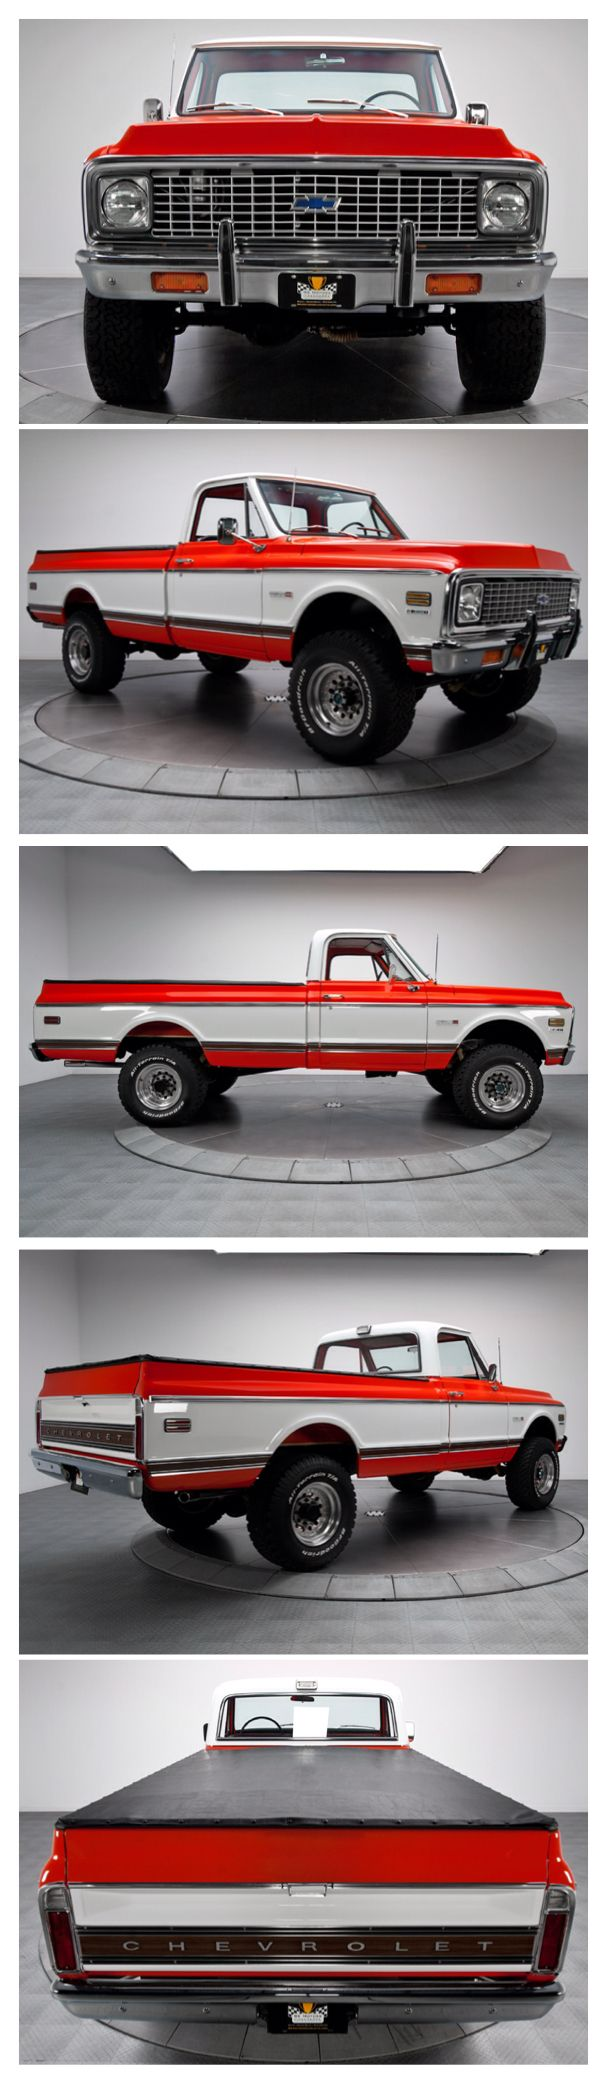 1972 Chevy Pickup K-20